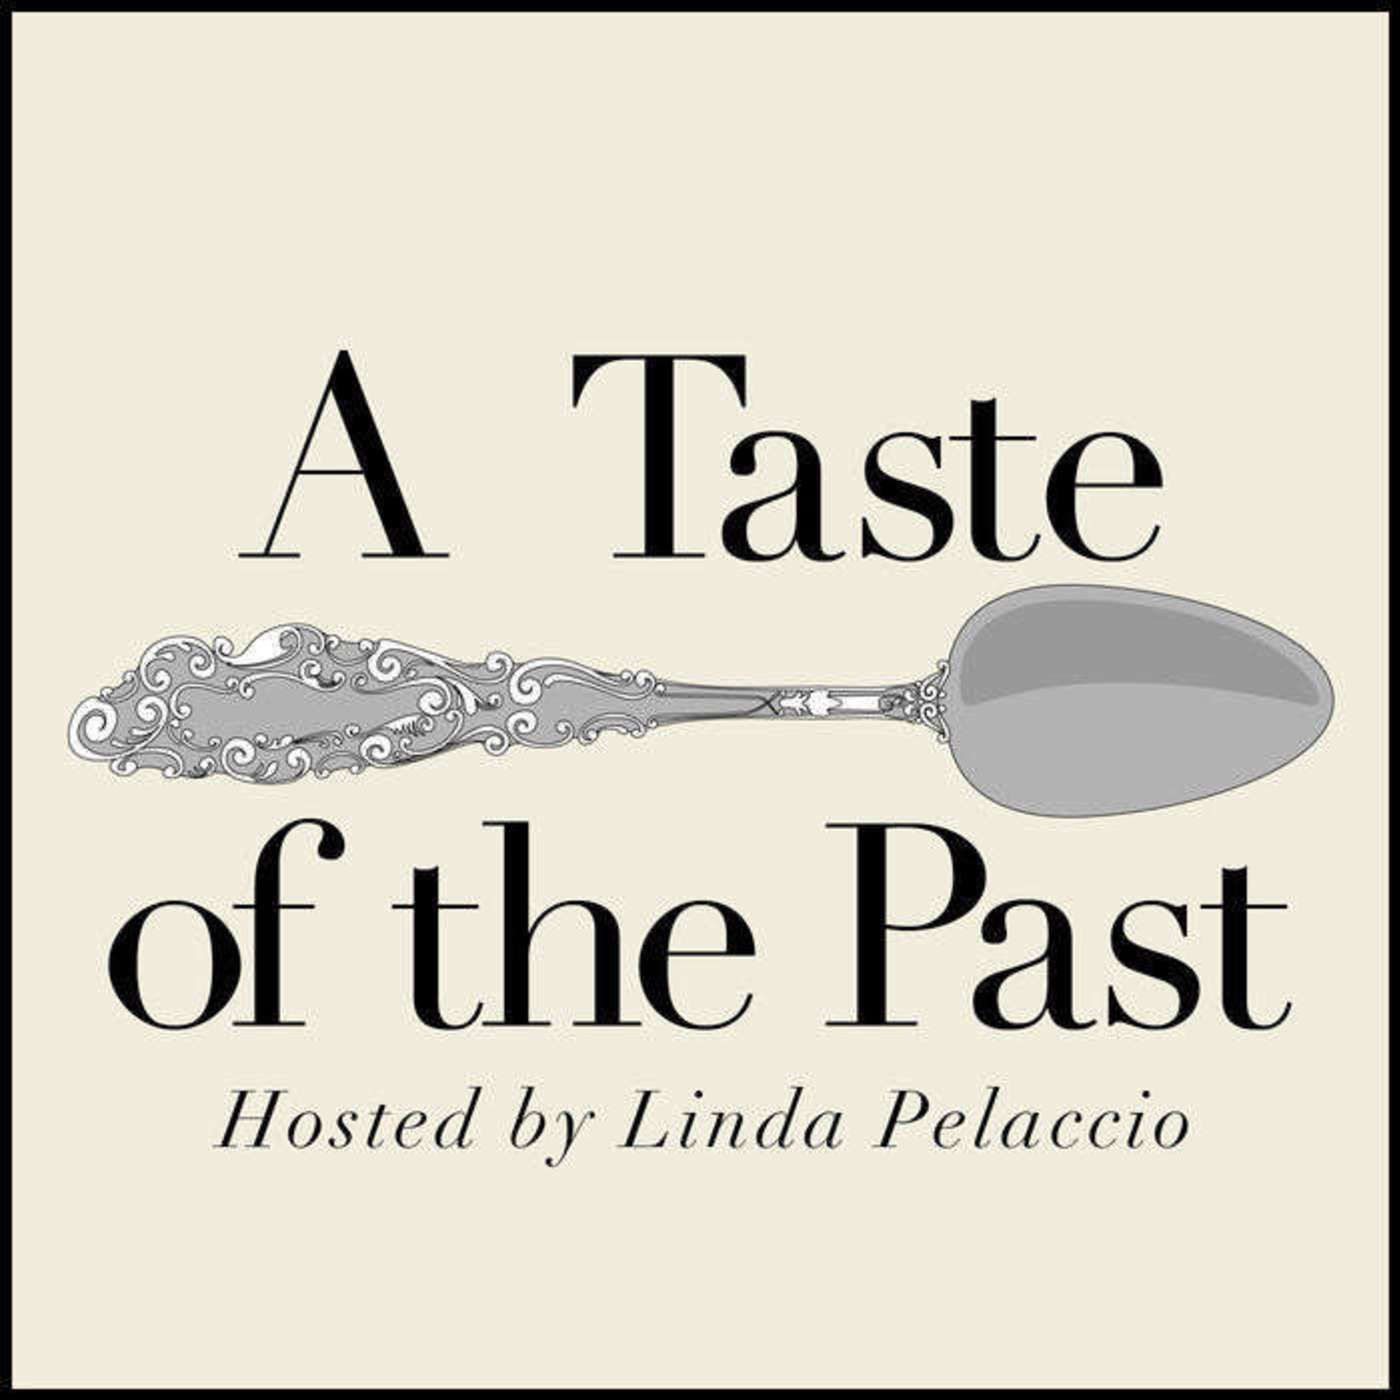 Episode 3: History of the Hamburger with Andrew Smith